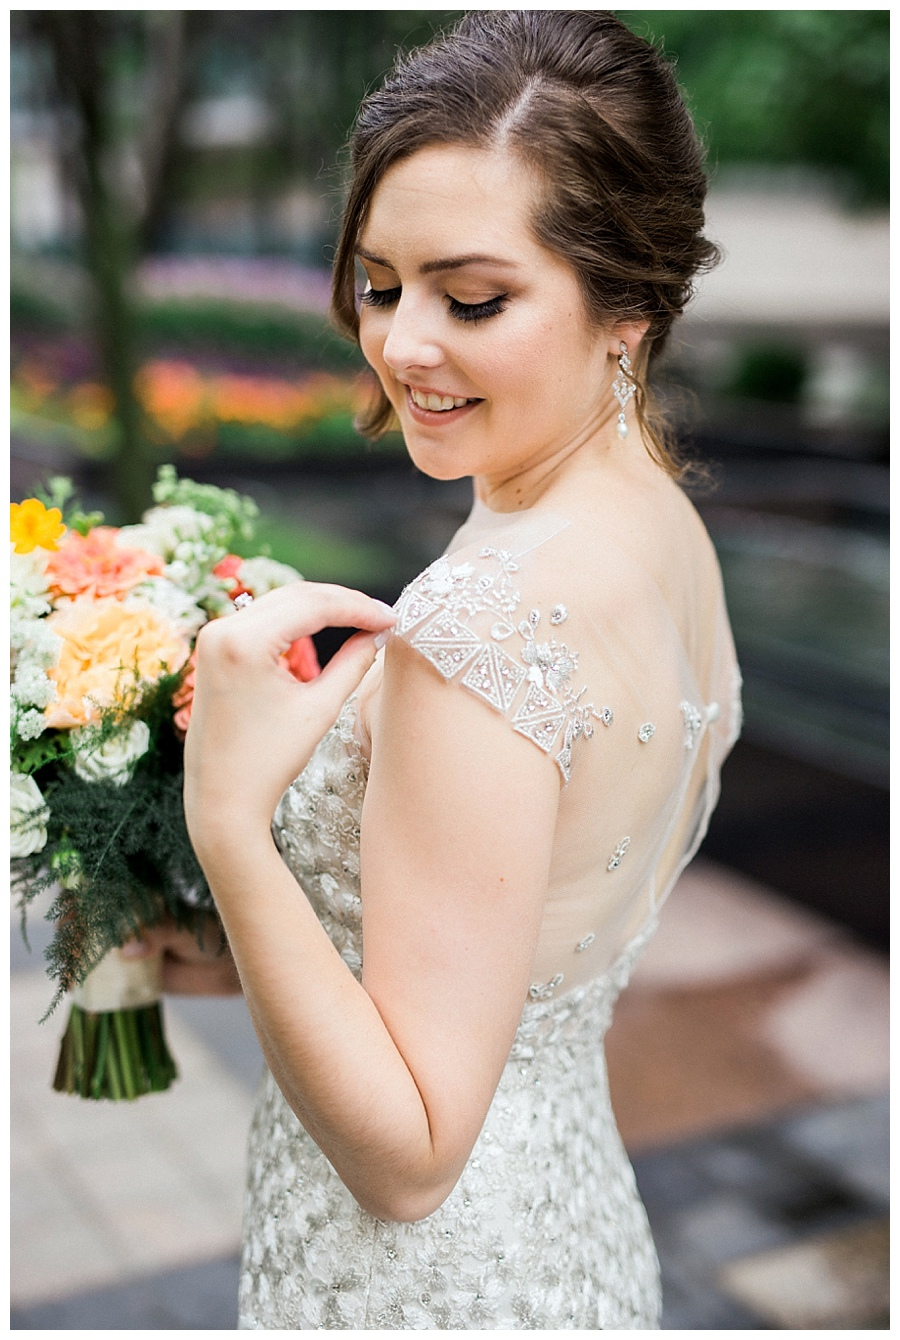 Chicago Bride wearing Lian Carlo wedding gown